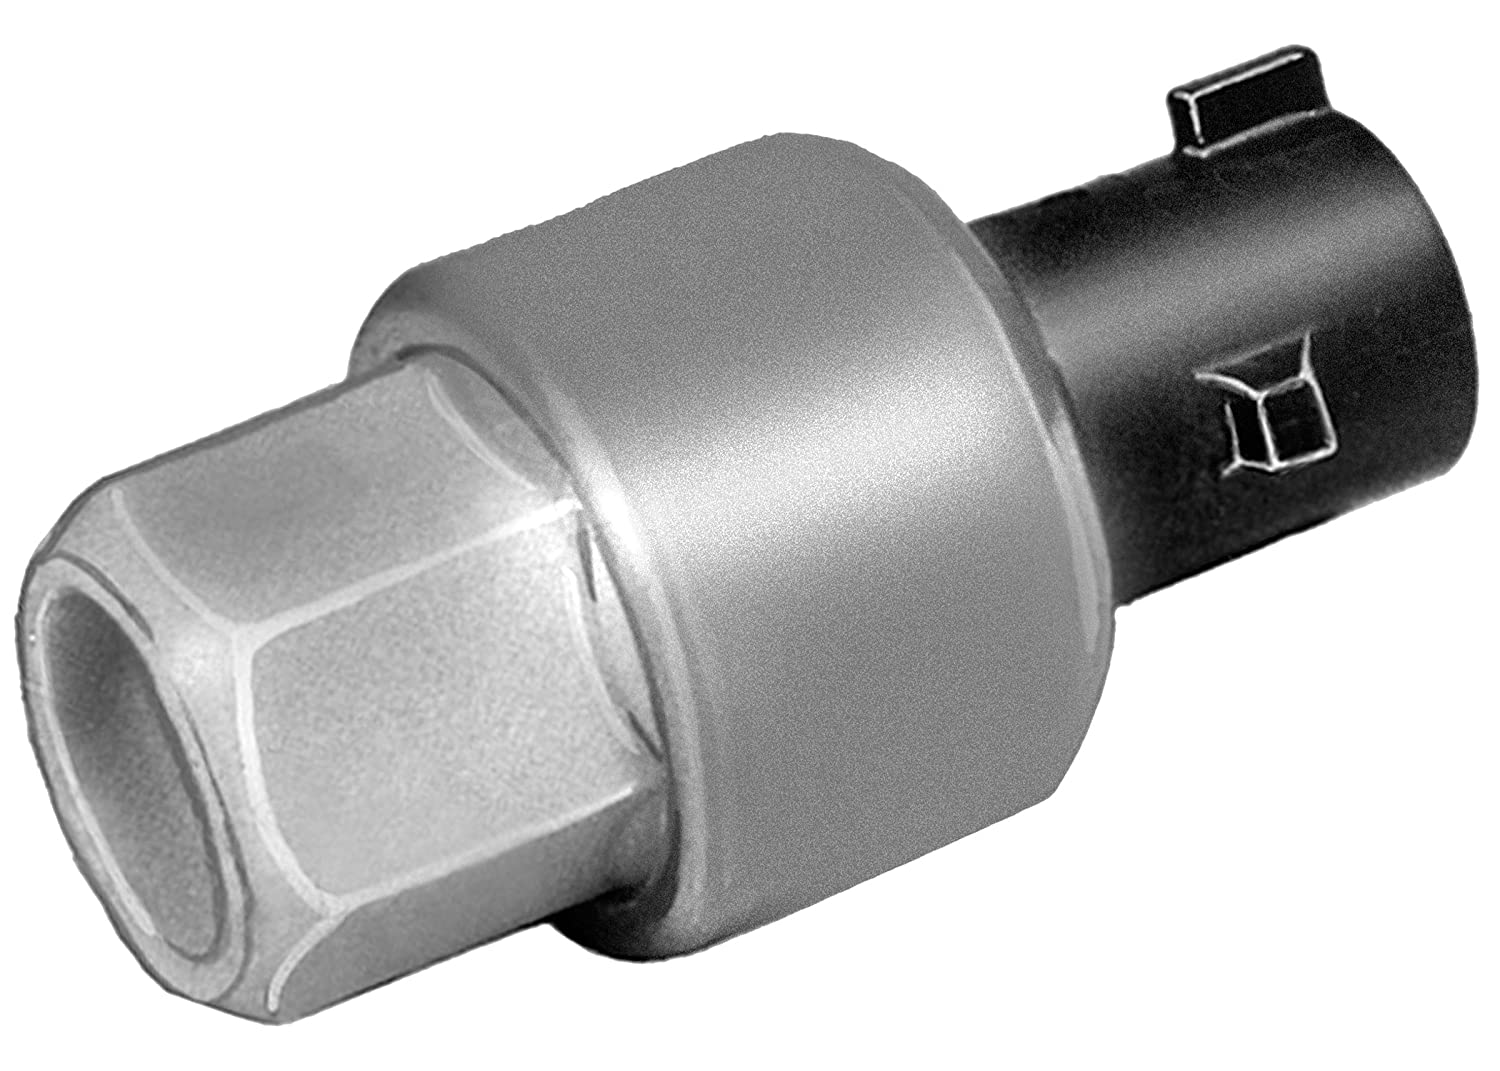 ACDelco 15-50131 Professional Air Conditioning High Temperature Cut-Off Switch